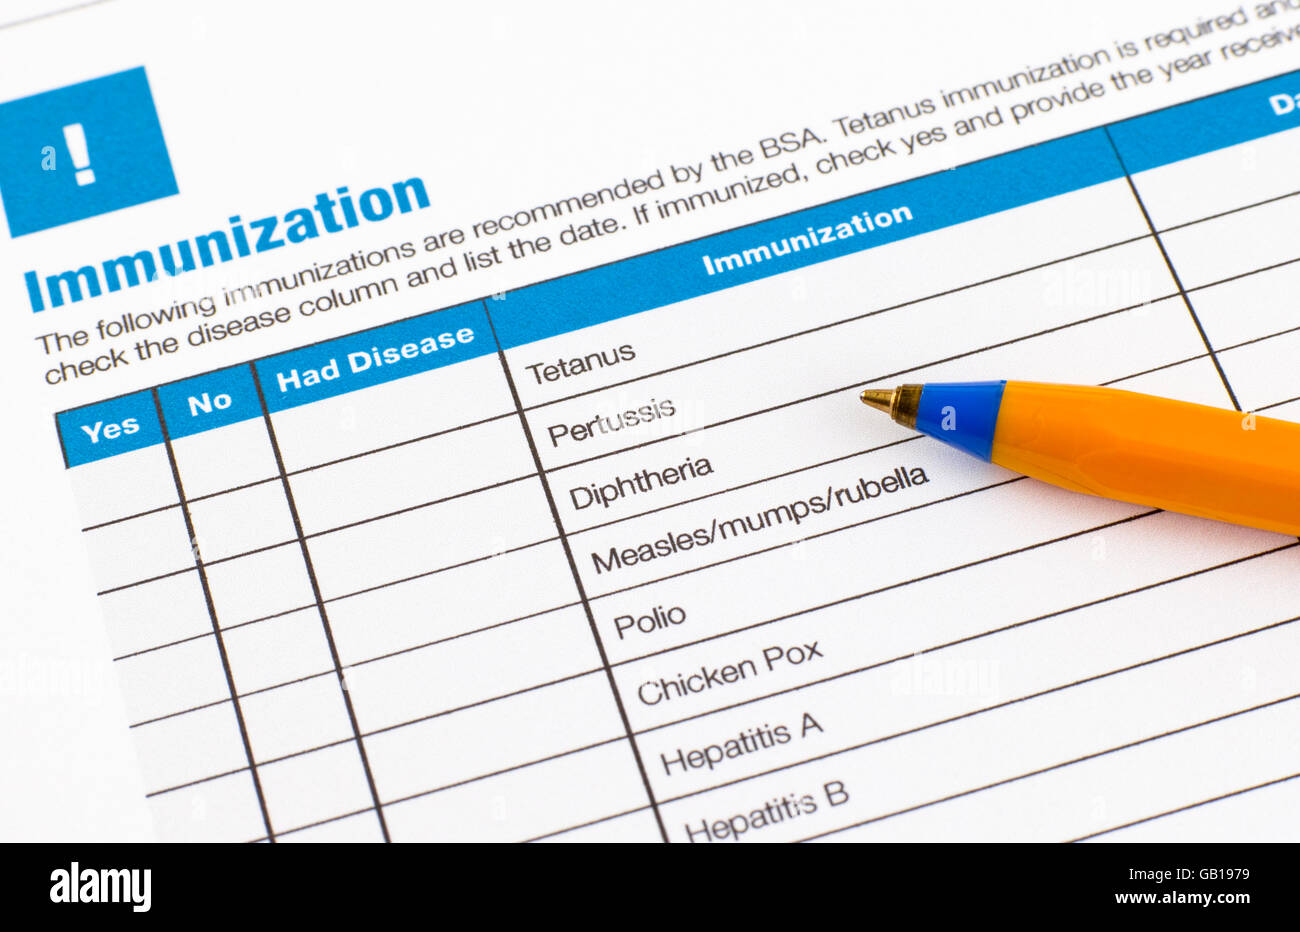 Immunization application form and ballpoint pen. - Stock Image